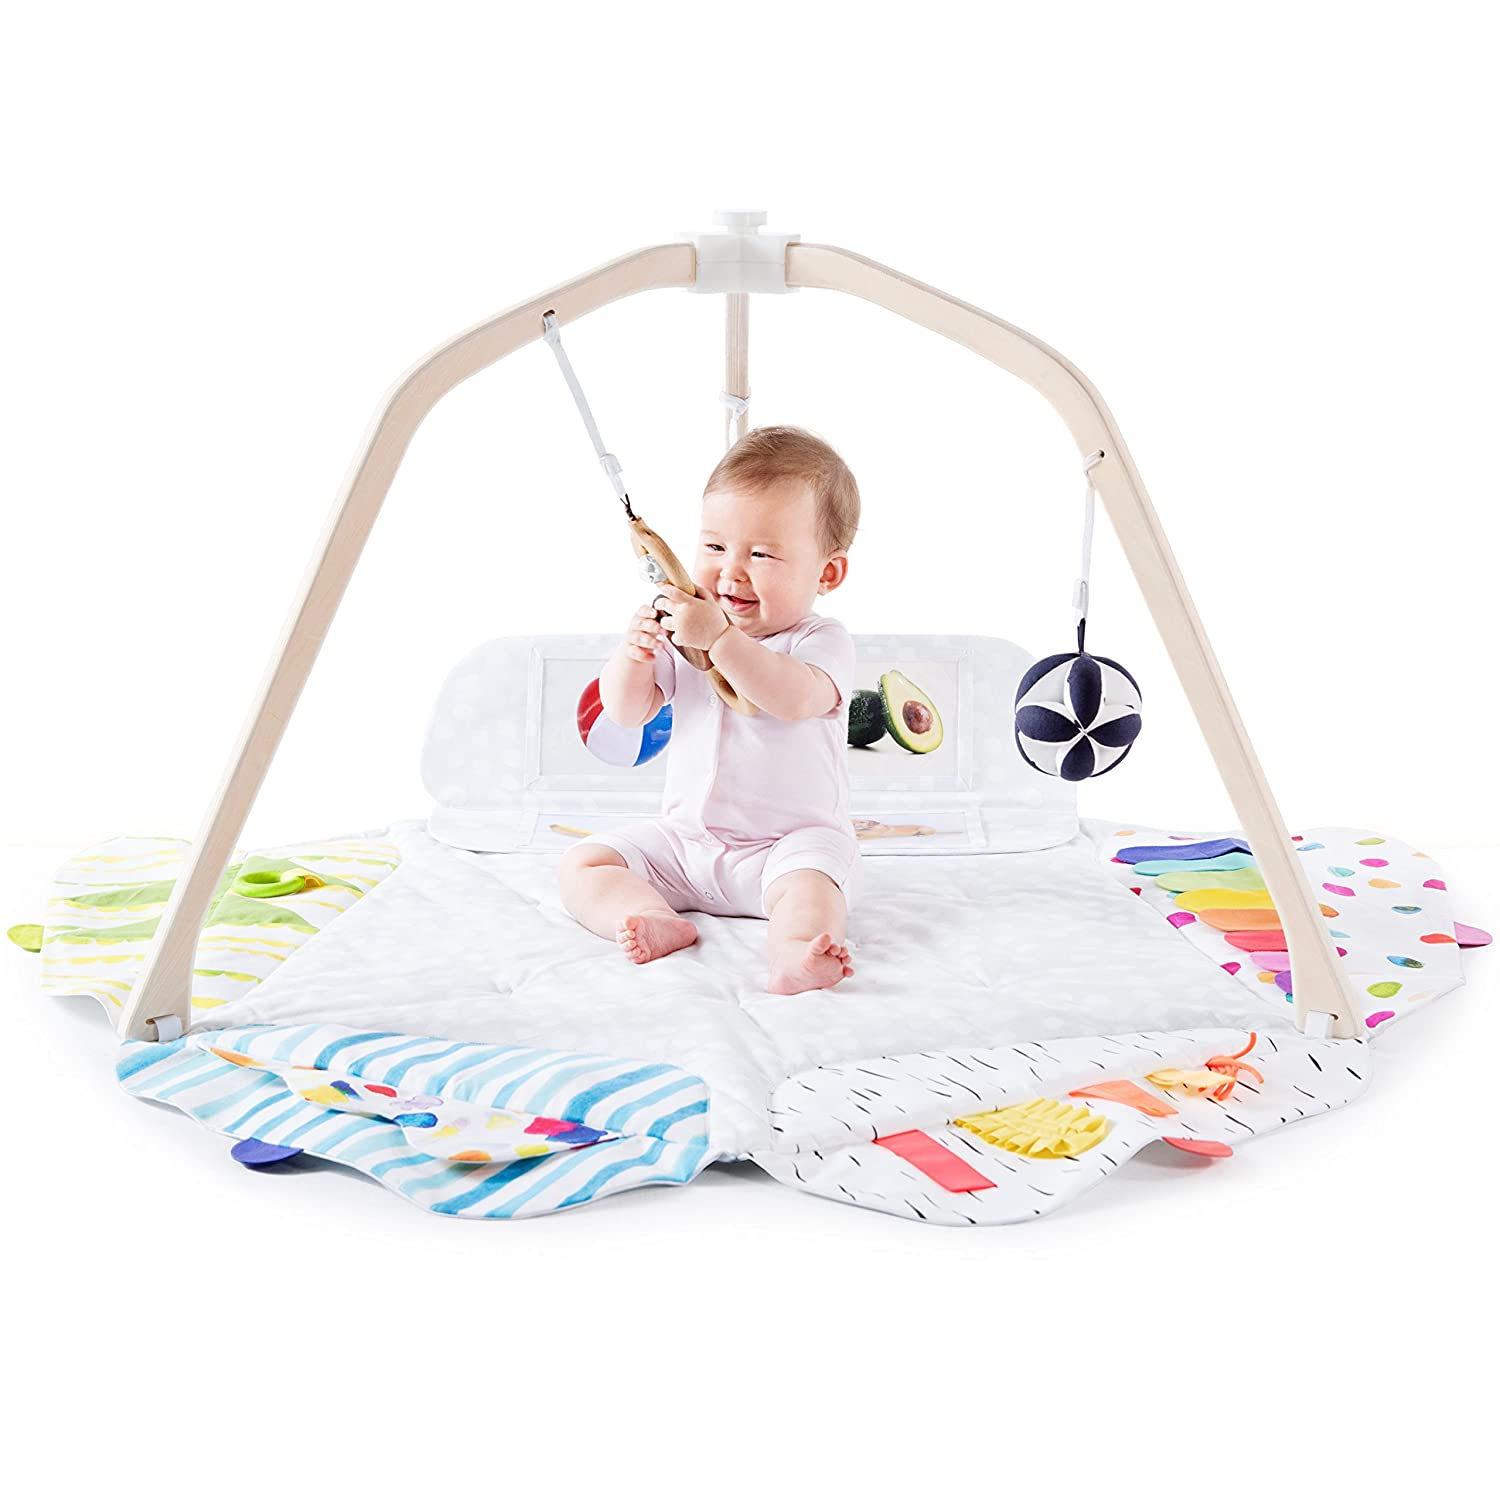 The Play Gym by Lovevery; 5 Developmental Zones for Brain, Fine, Gross Motor & Sensory Development; Organic Teether, Wood Batting Ring, Mirrors; Grounded in Science - Educational Playtime w/a Purpose Lovevery Baby 9000001